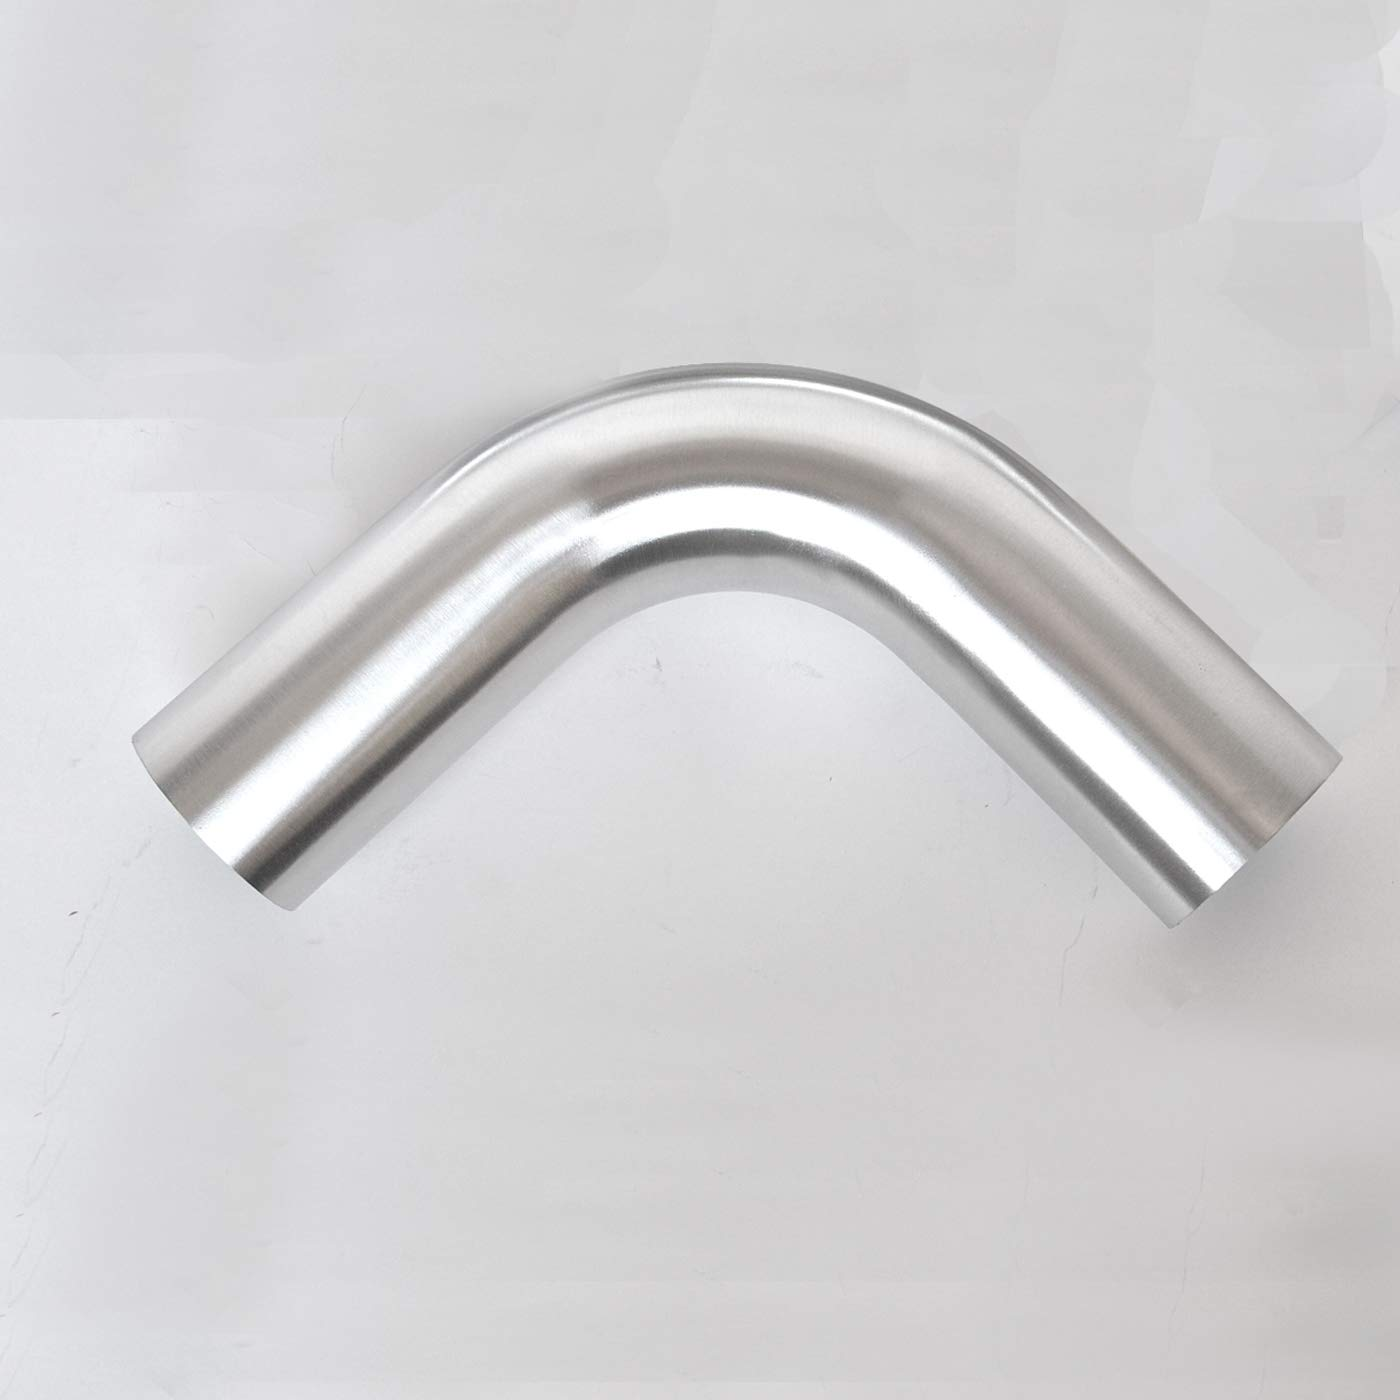 45 Degree Bend Elbow 2 Inch 6061 Aluminum Pipe Tube Intercooler Pipe High Class Brushed Treatment Tight Radius Air Intake Tube OD 2 51mm 100mm Leg Length 4